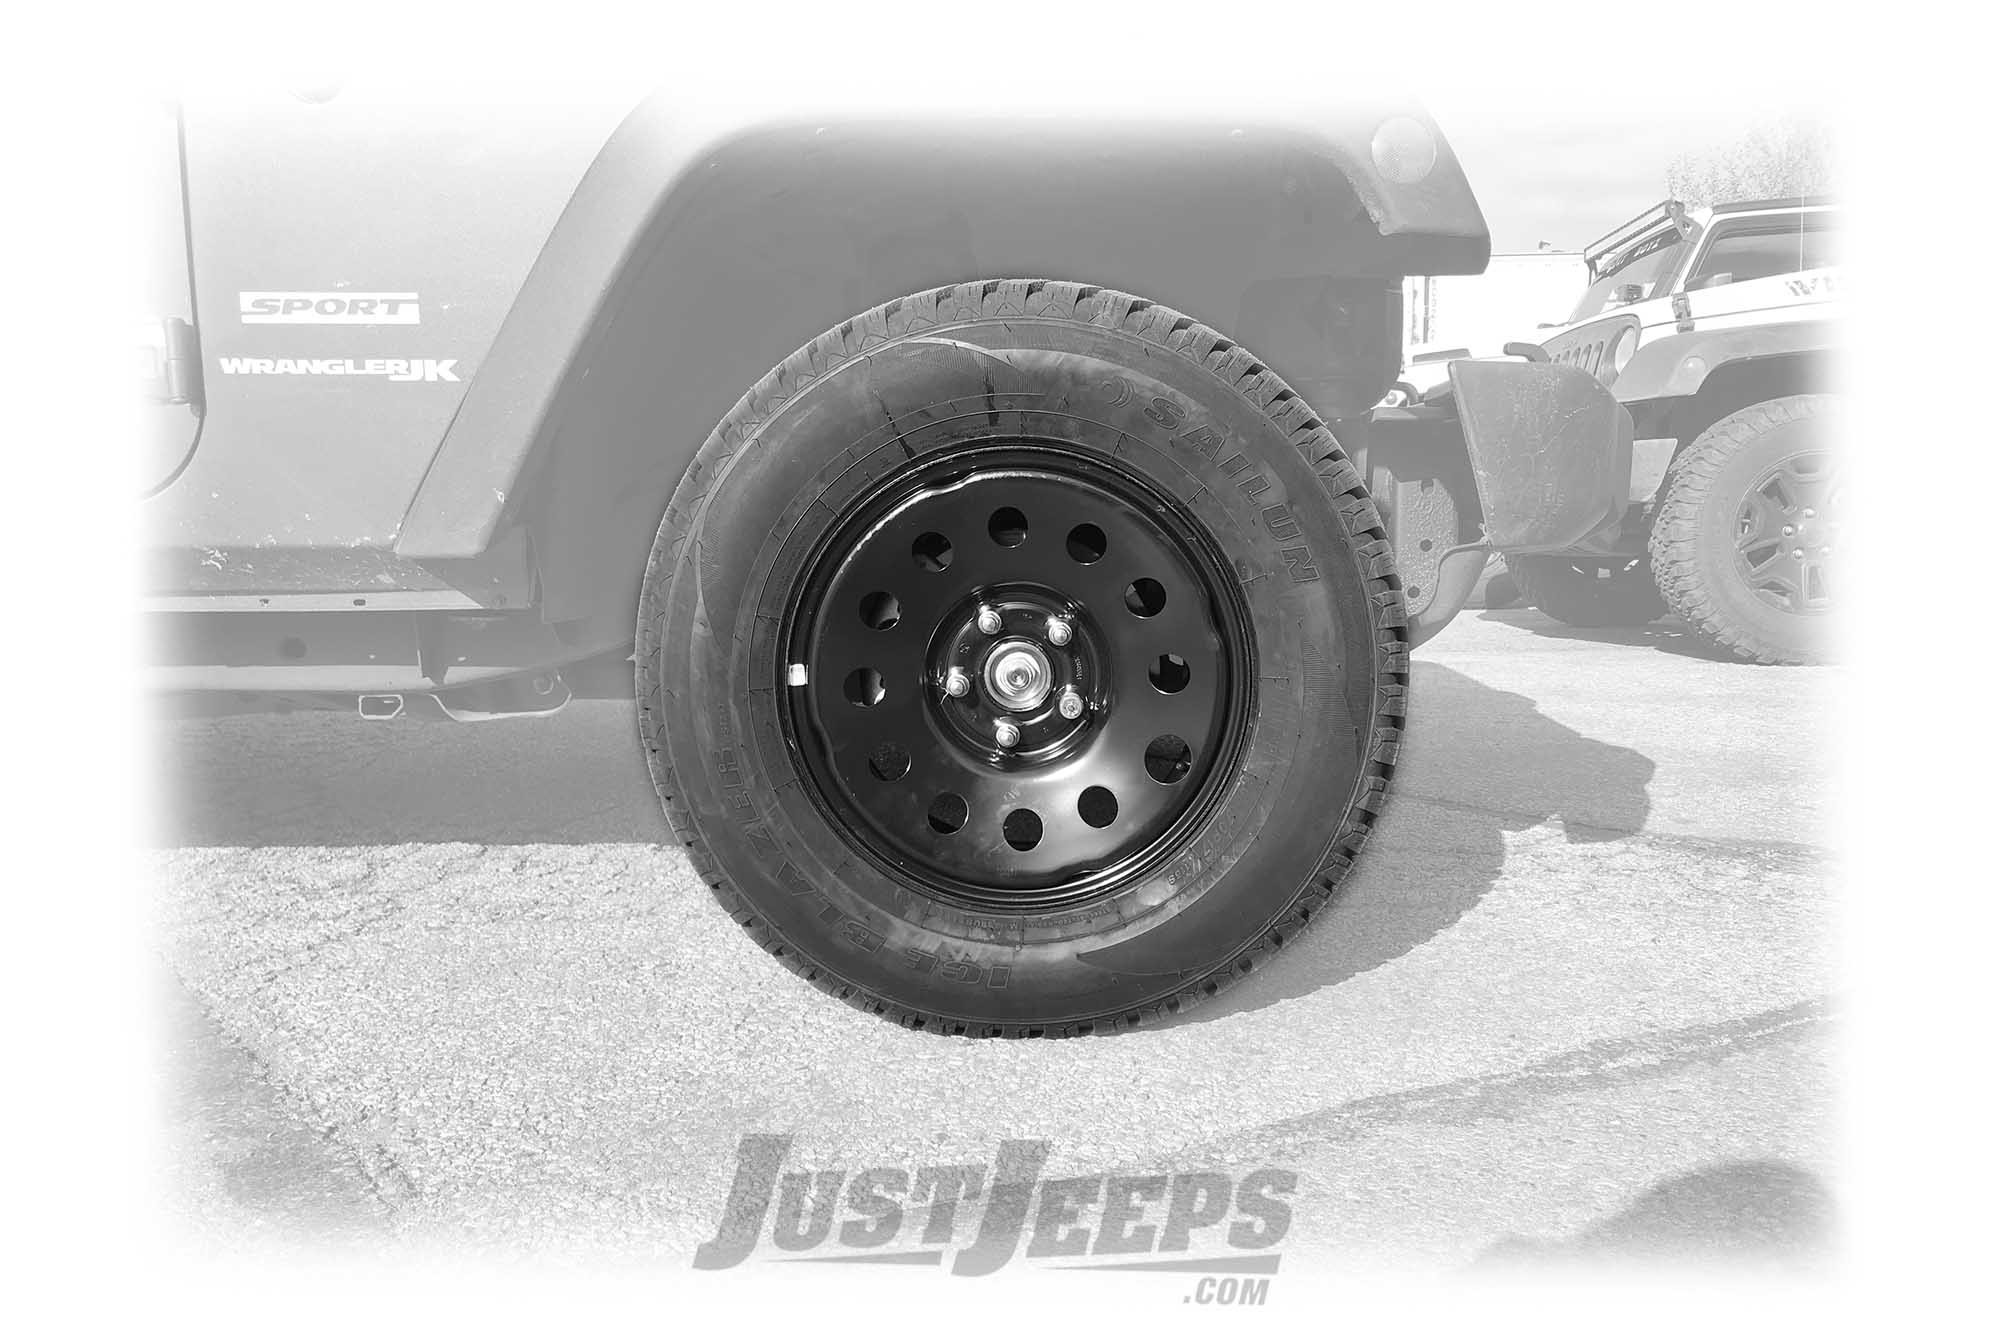 hight resolution of just jeeps 17 winter tire package with black steel wheels 265 70r17 for jeep wrangler jk jeep wrangler jk unlimited shop by vehicle jeep parts store